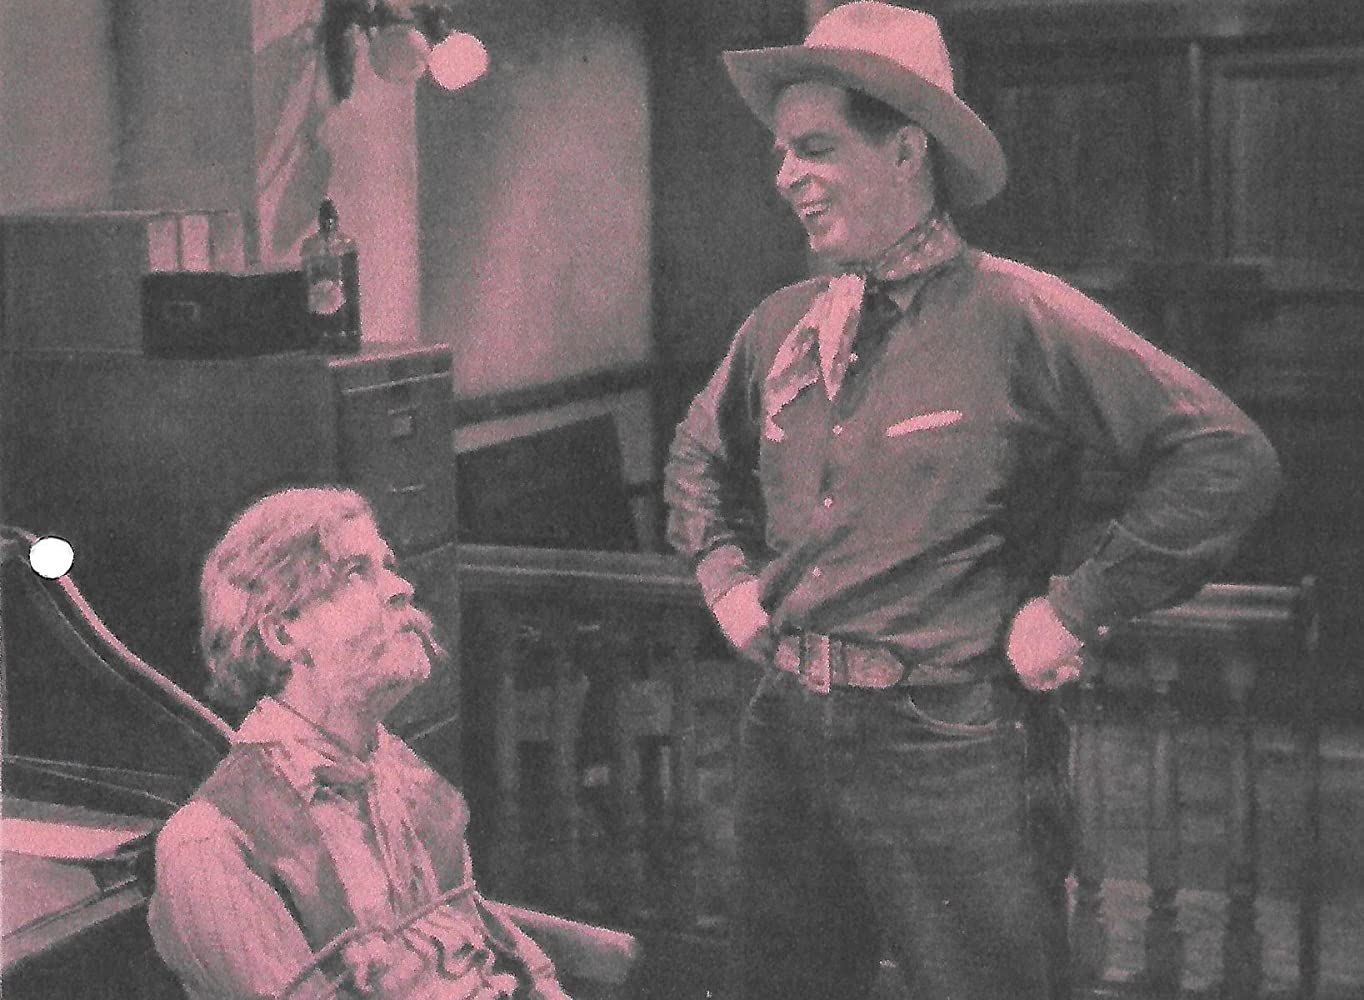 Hoot Gibson and George 'Gabby' Hayes in Swifty (1935)